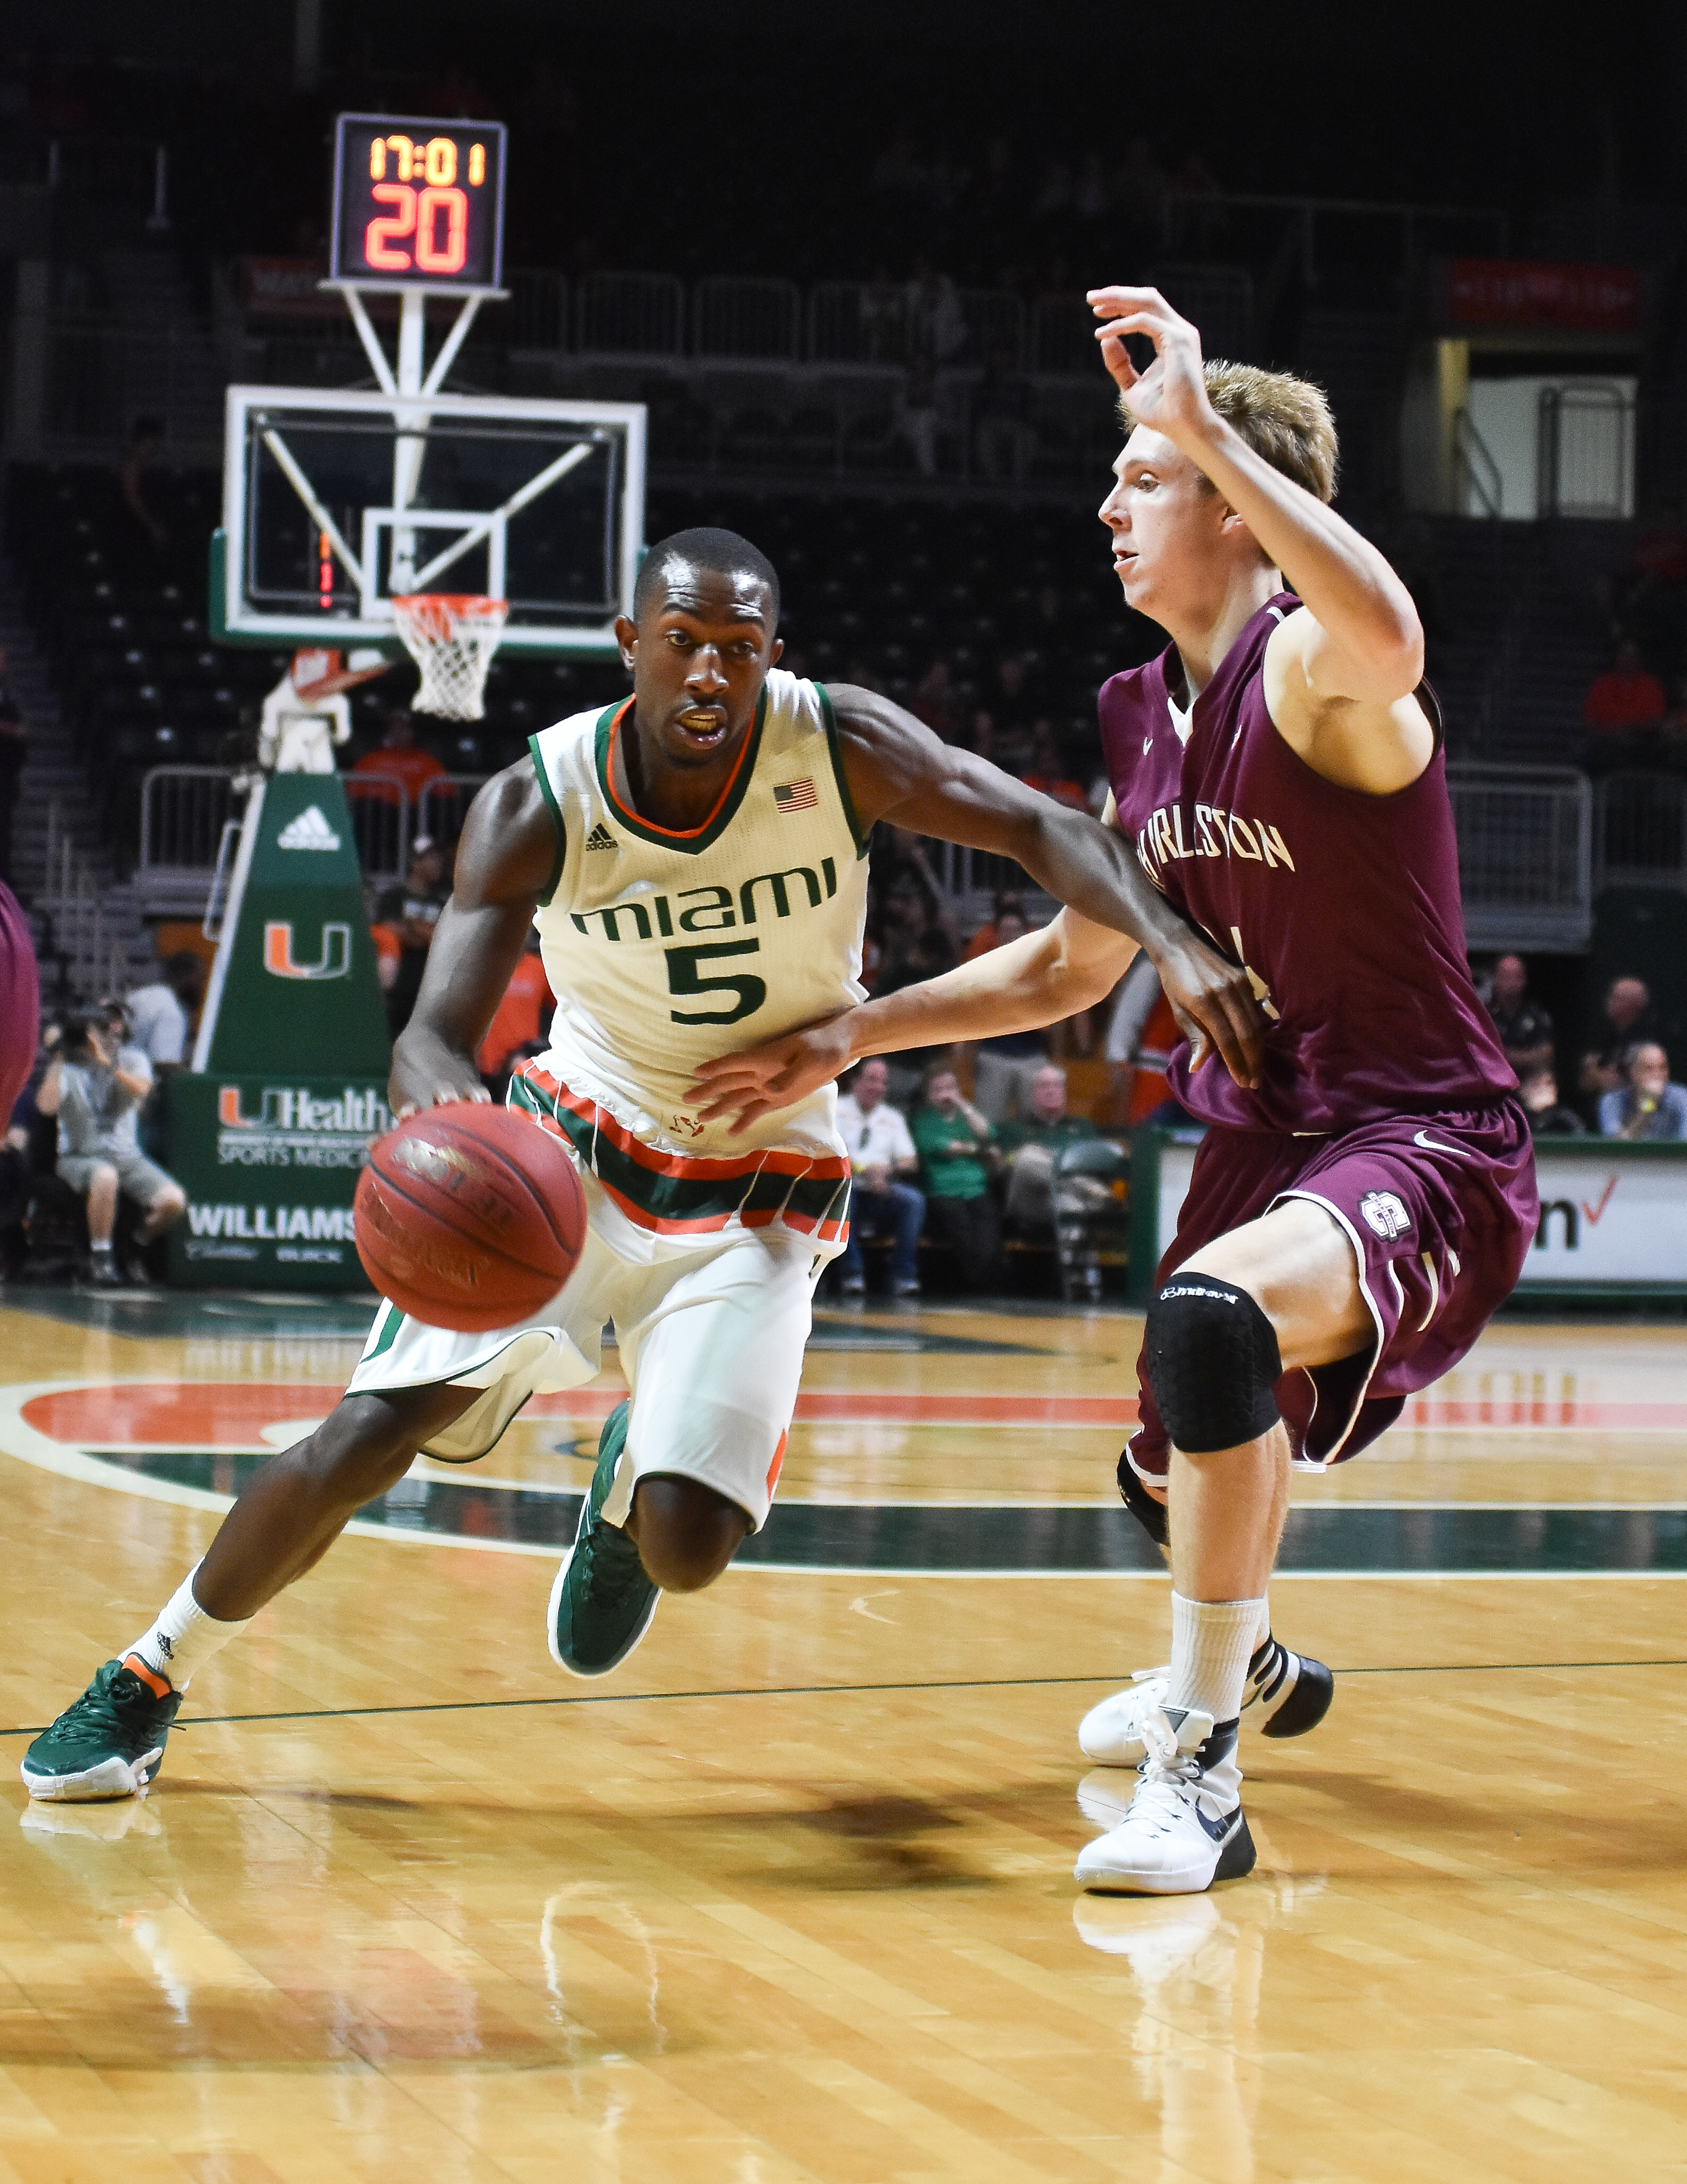 Miami guard Anthony Lawrence Jr. attempts to get by Charleston's Canyon Barry during first half of an NCAA college basketball game in Coral Gables, Fla., Saturday, Dec. 19, 2015. (AP Photo/Gaston De Cardenas)